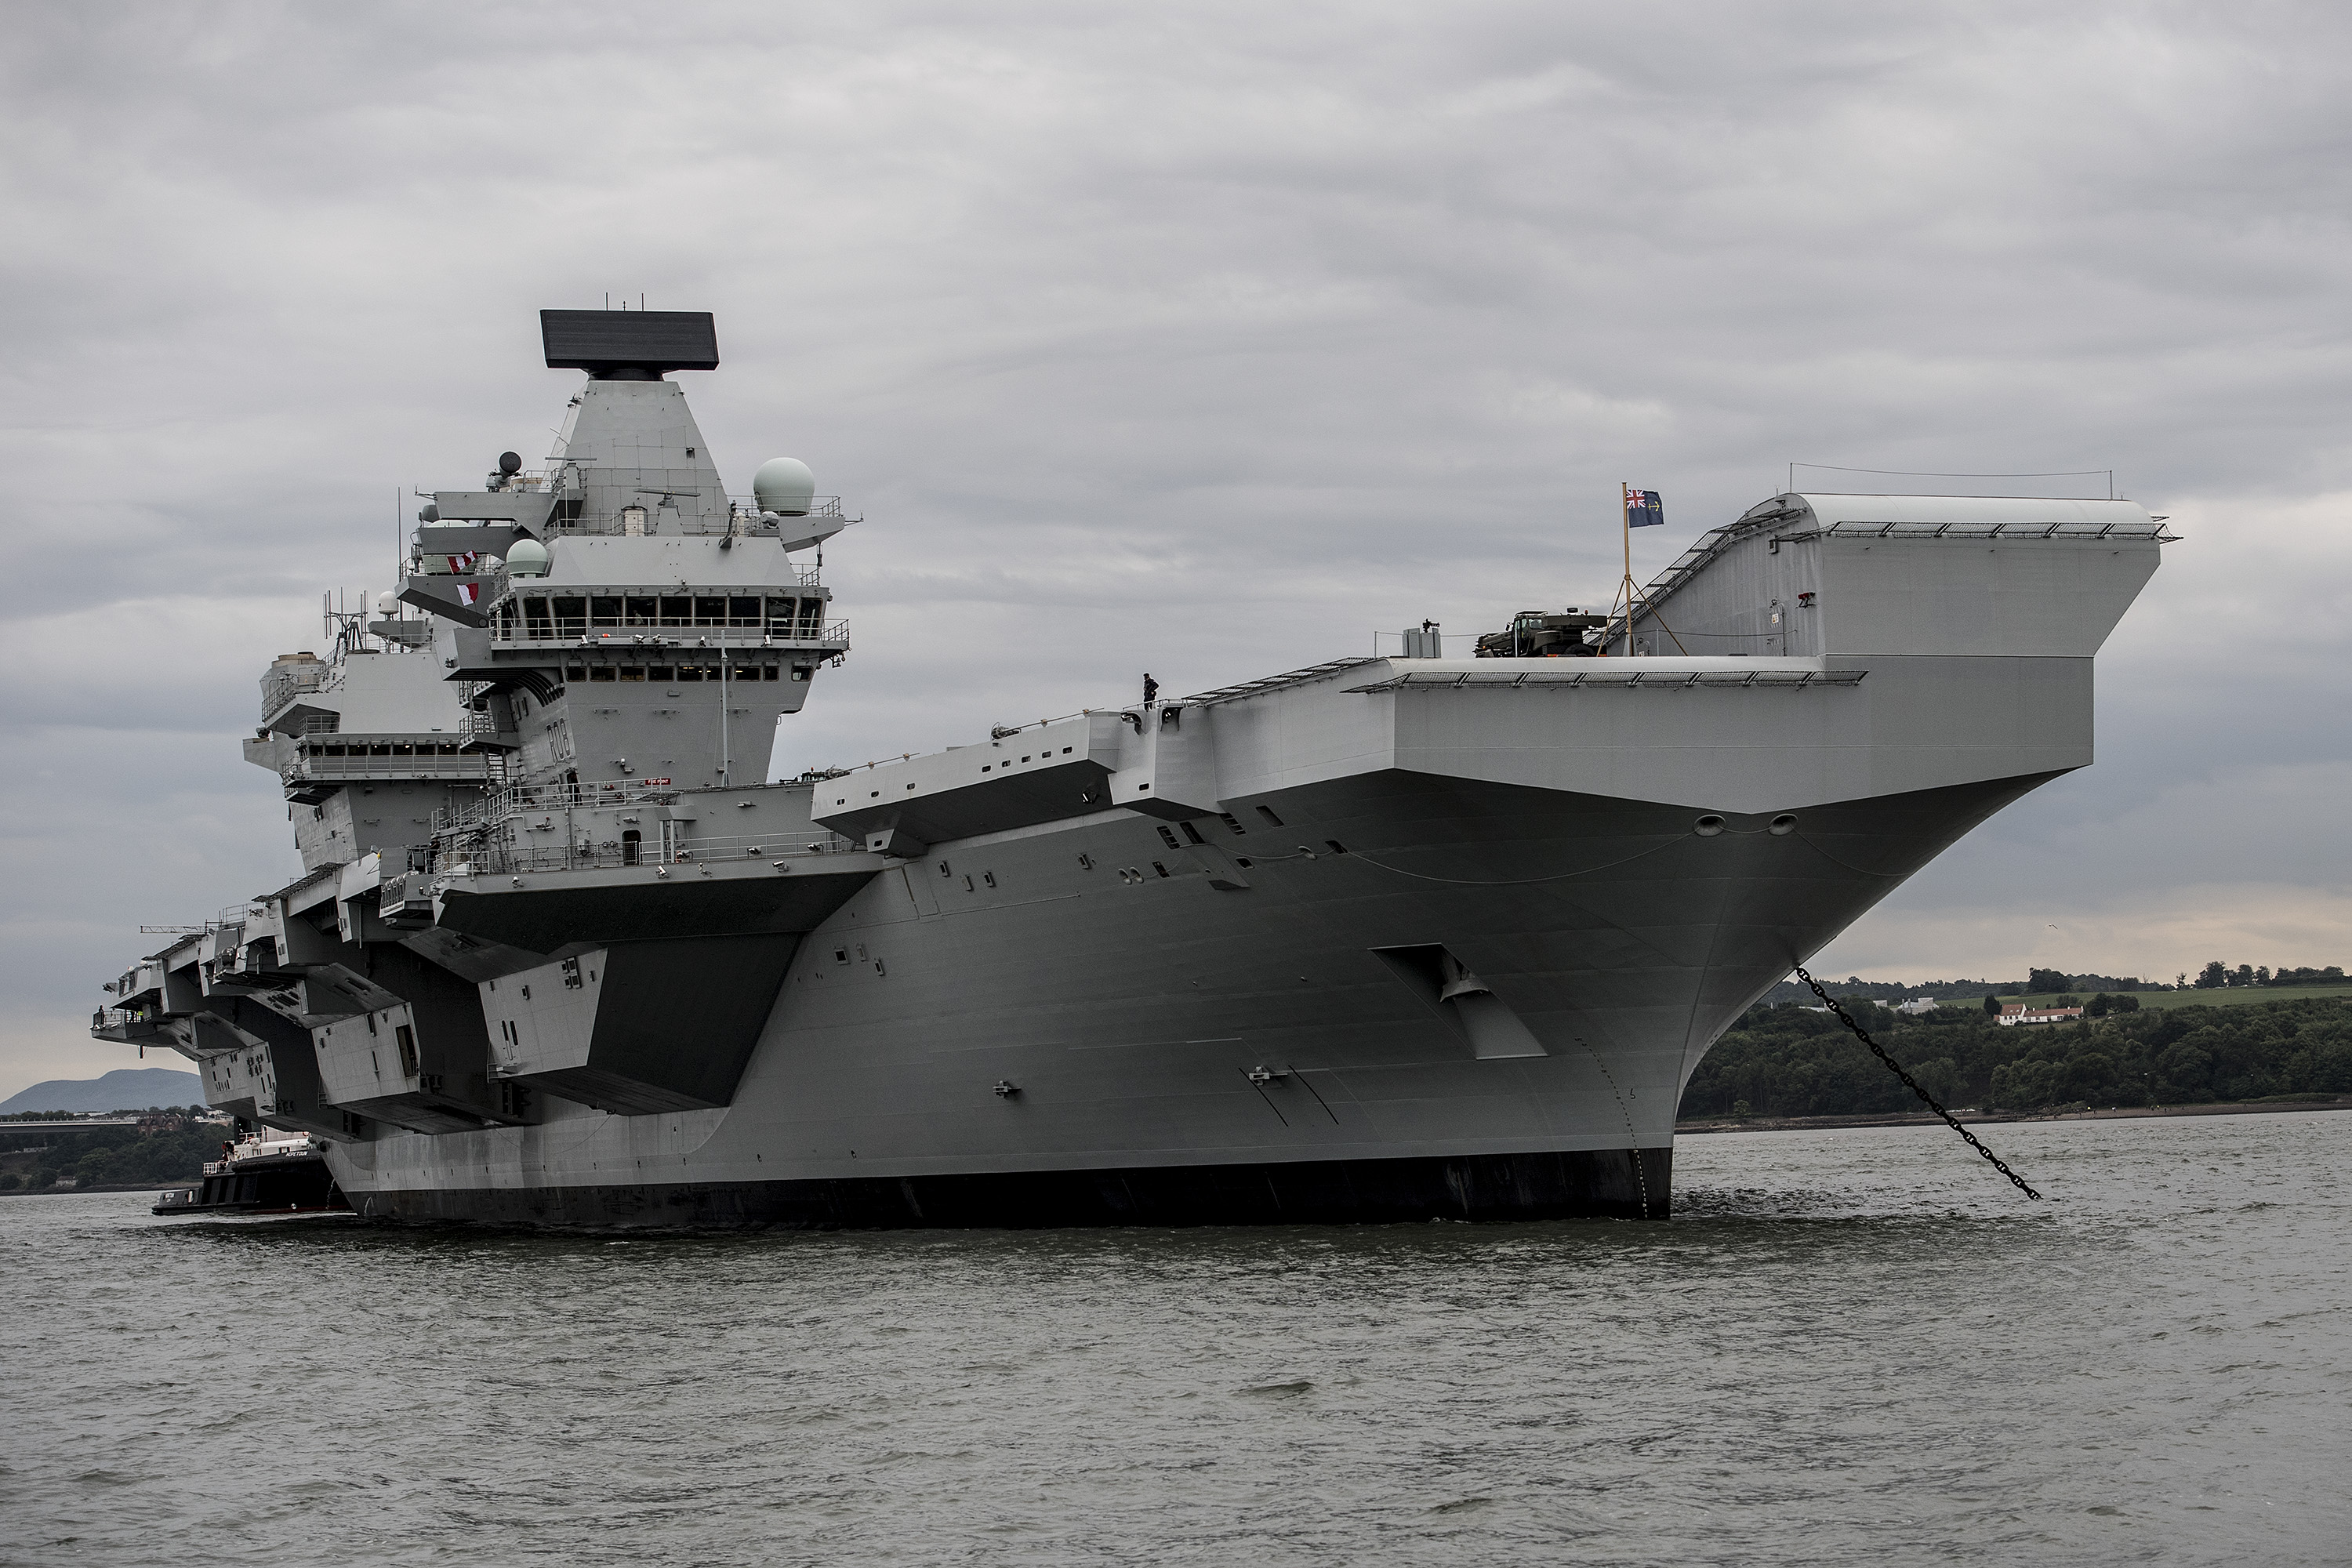 Job Done: Dredging Complete for Aircraft Carriers - Inside DIO